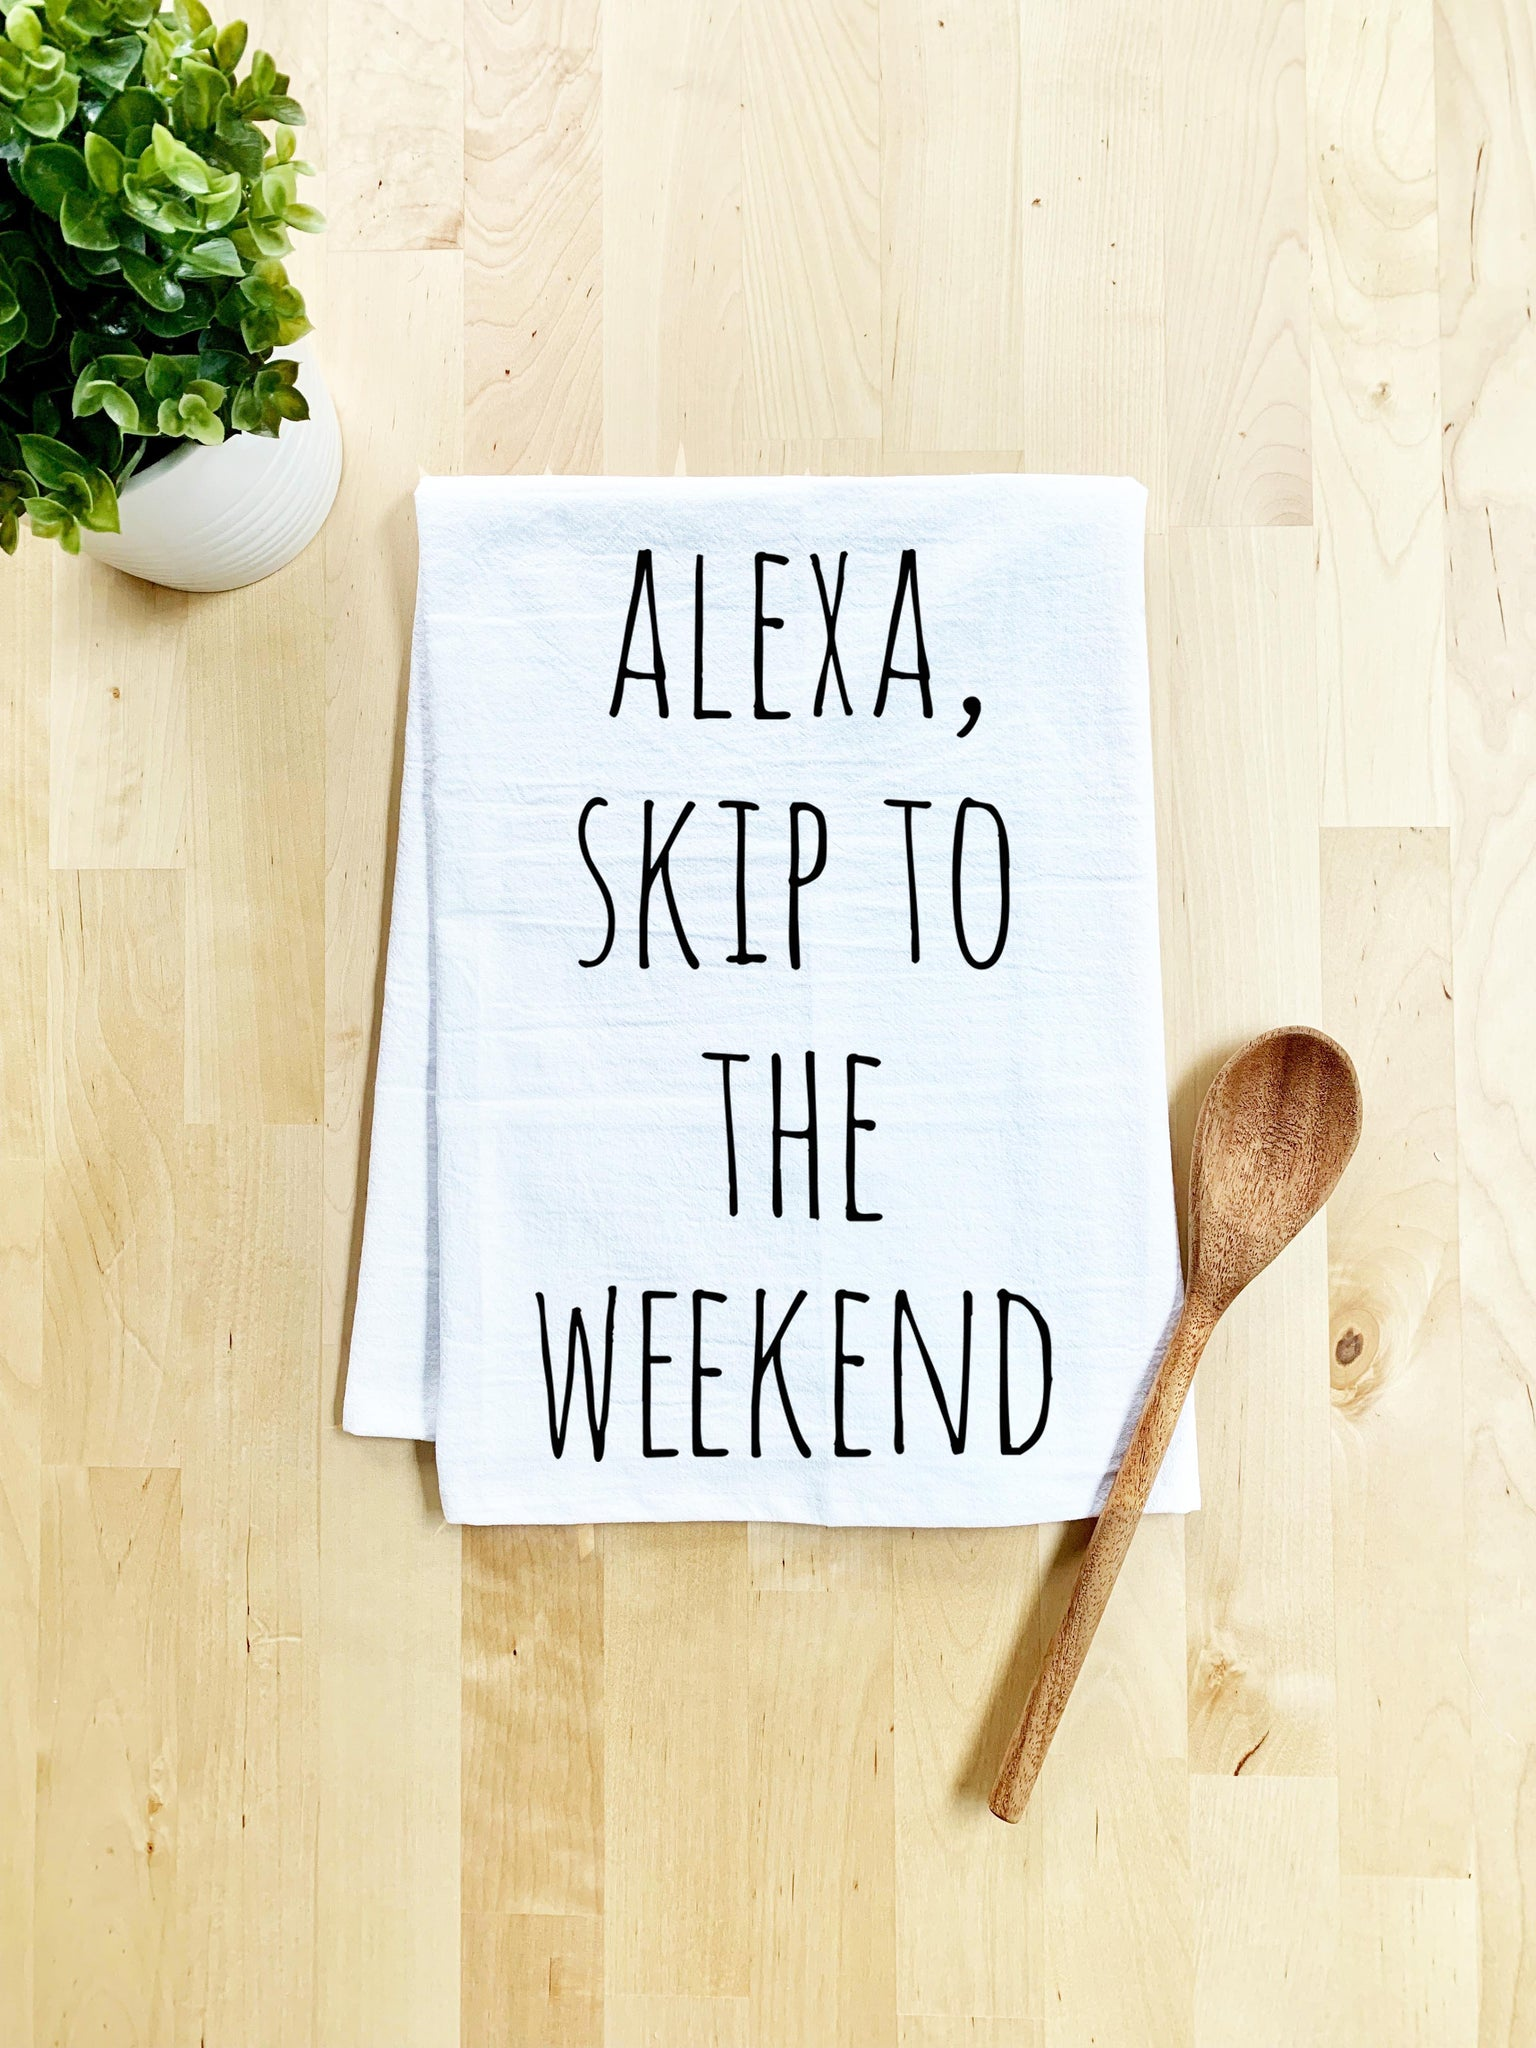 Alexa Skip To The Weekend Dish Towel - White Or Gray - MoonlightMakers